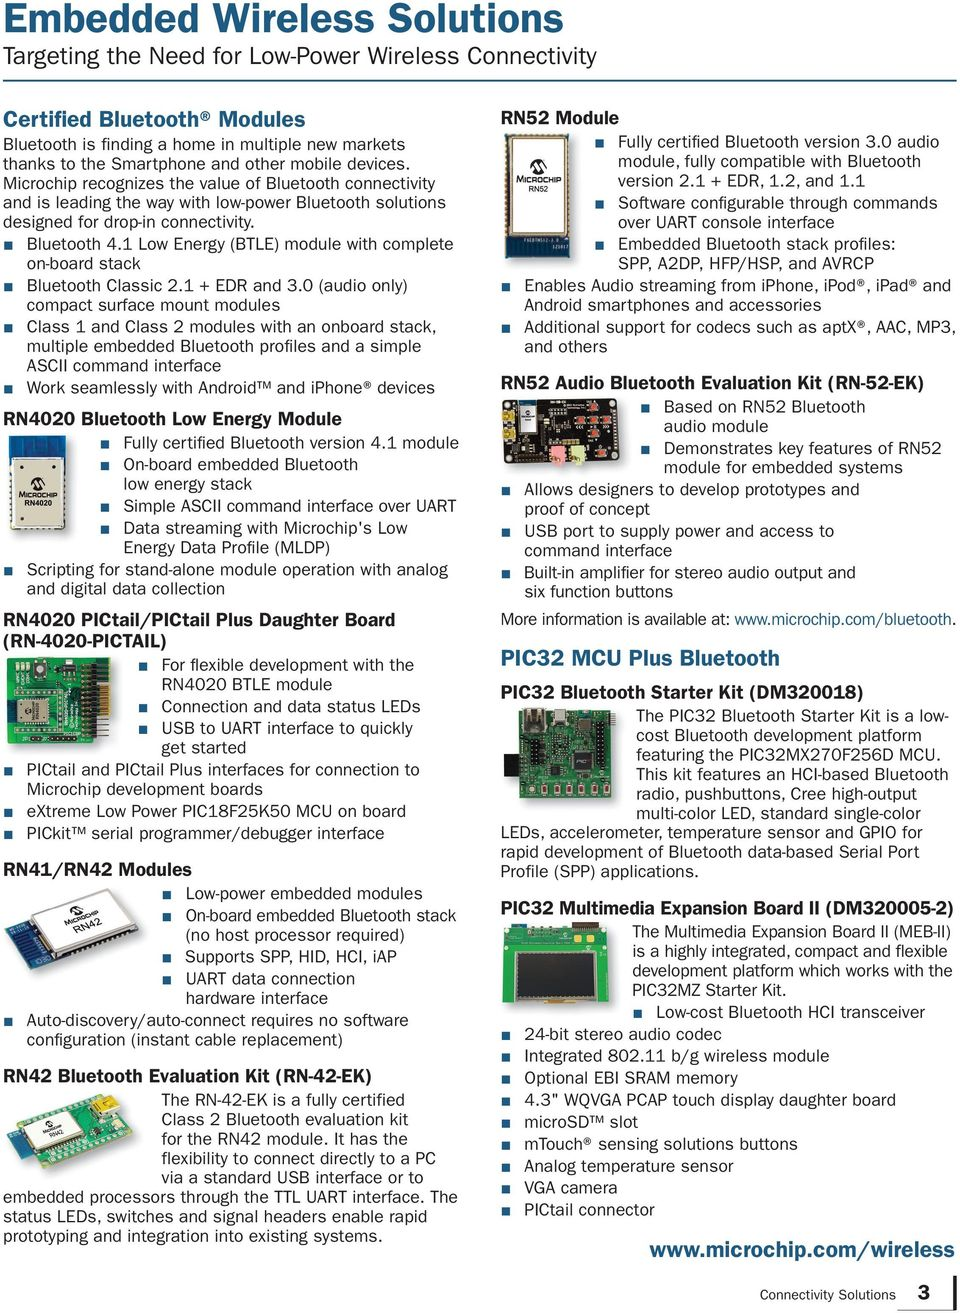 Connectivity Solutions for Embedded Design - PDF